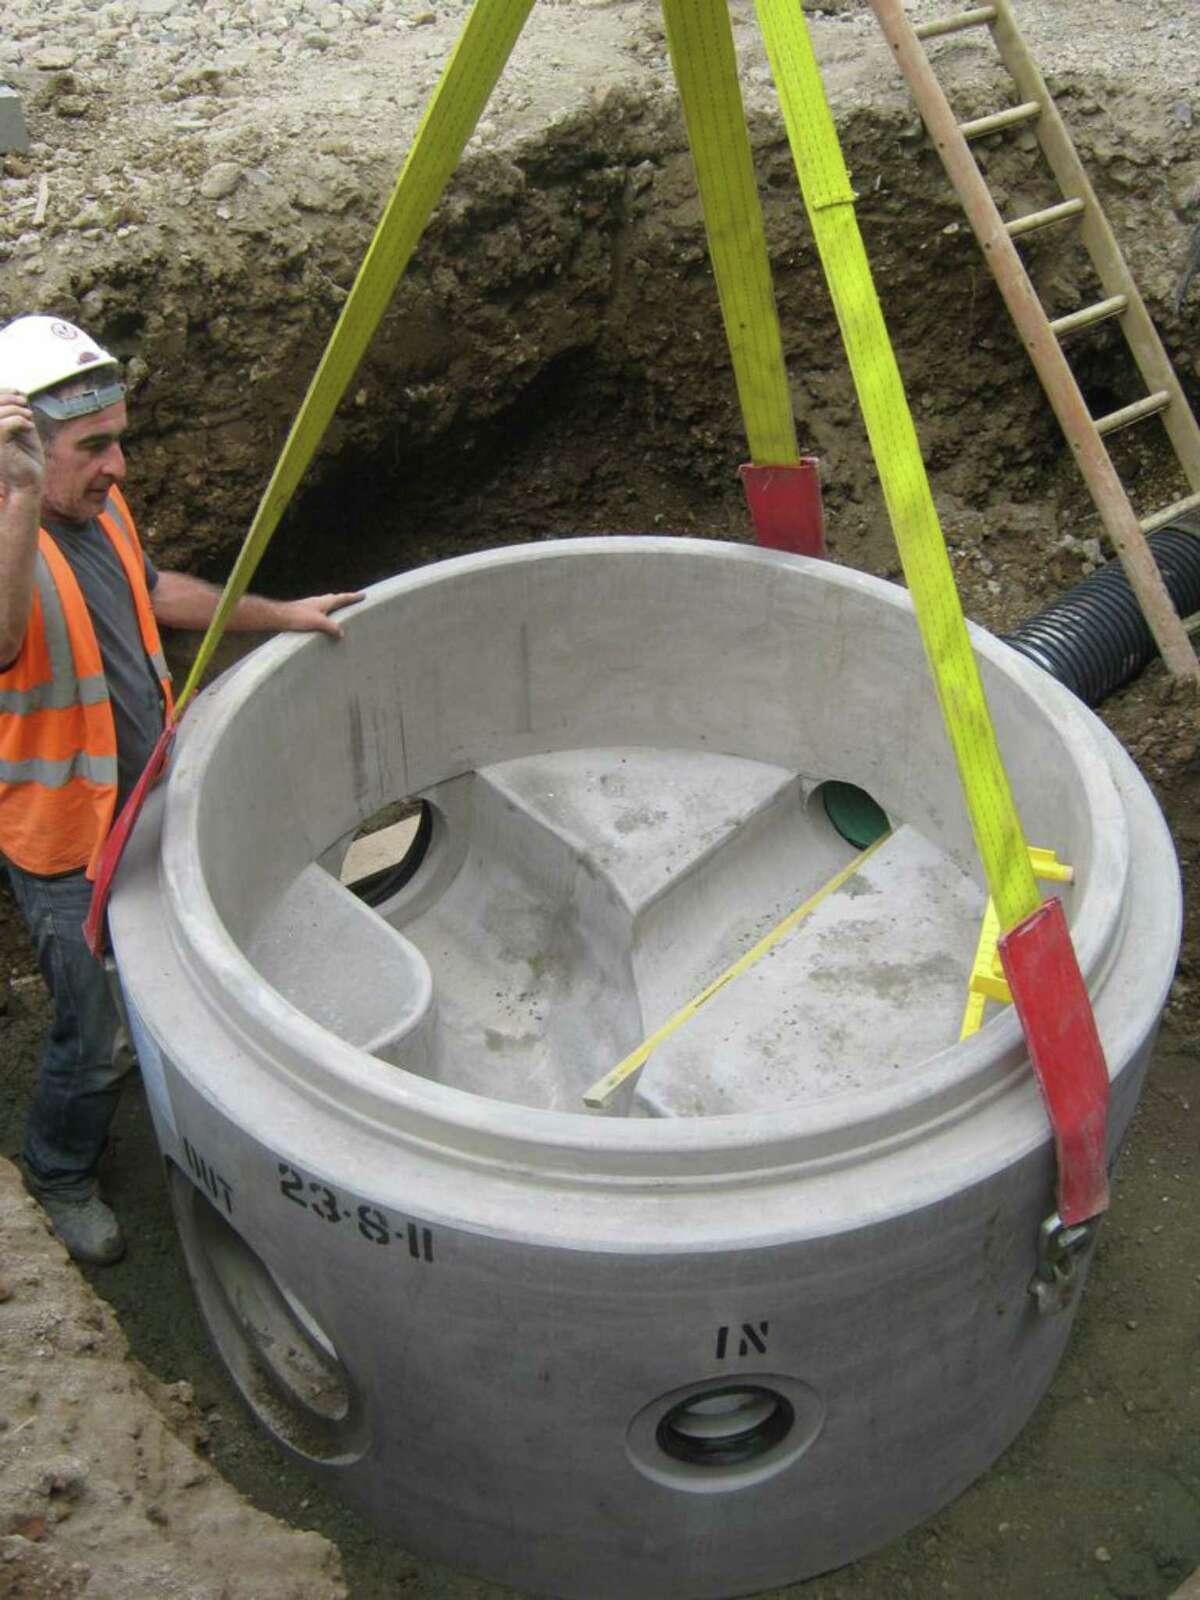 A new manhole is installed as part of the Clifton Park sewer rehabilitation project. (Saratoga County Sewer District 1)